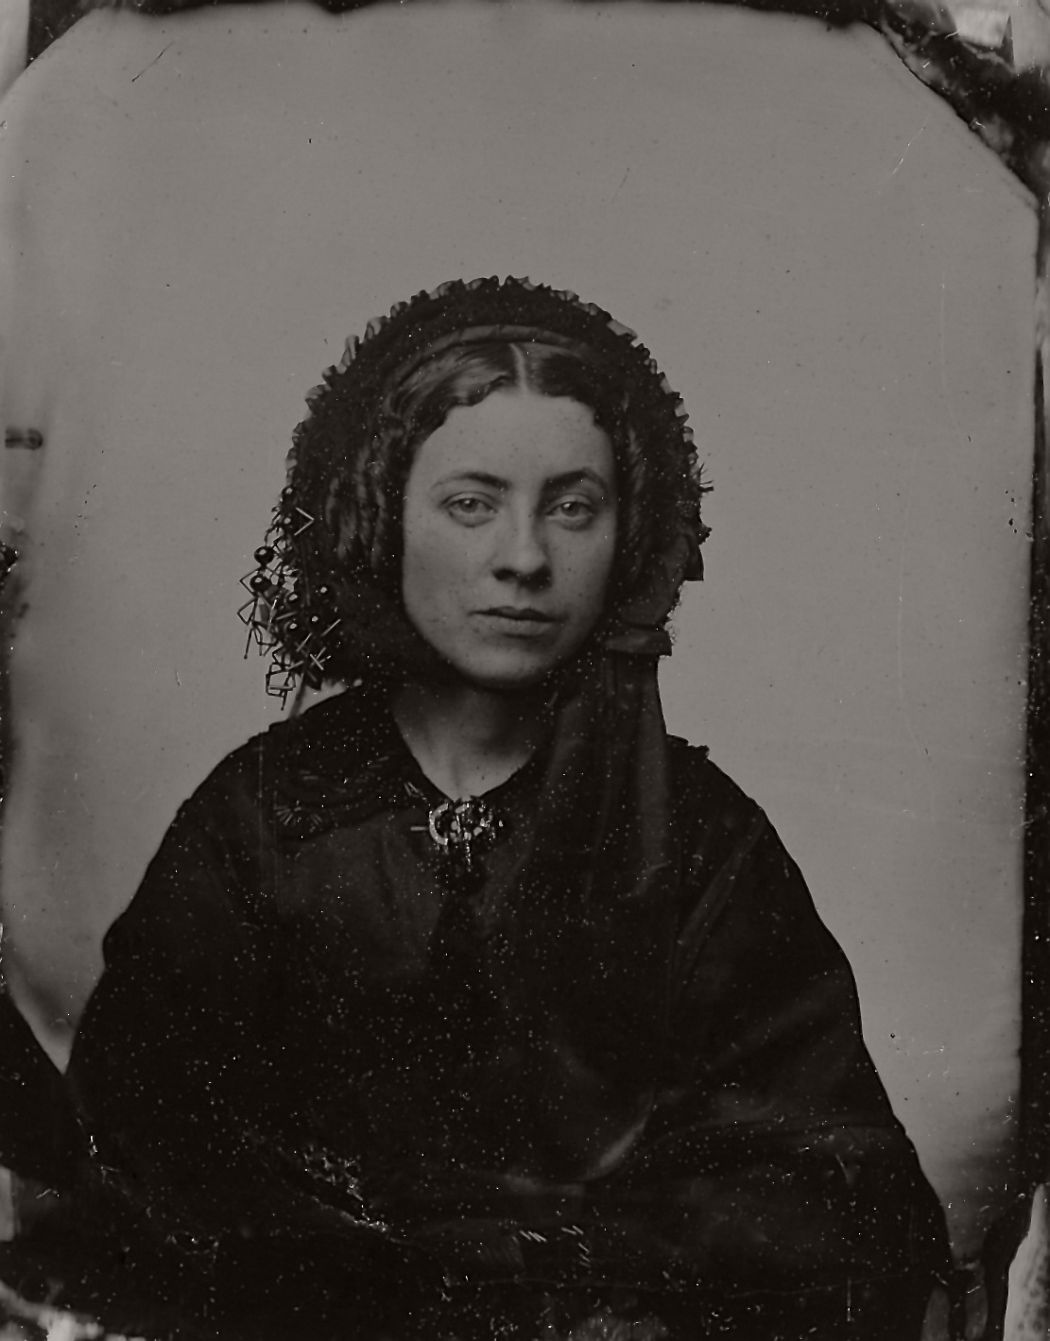 vintage-daguerreotypes-of-widows-in-mourning-victorian-era-1800s-46